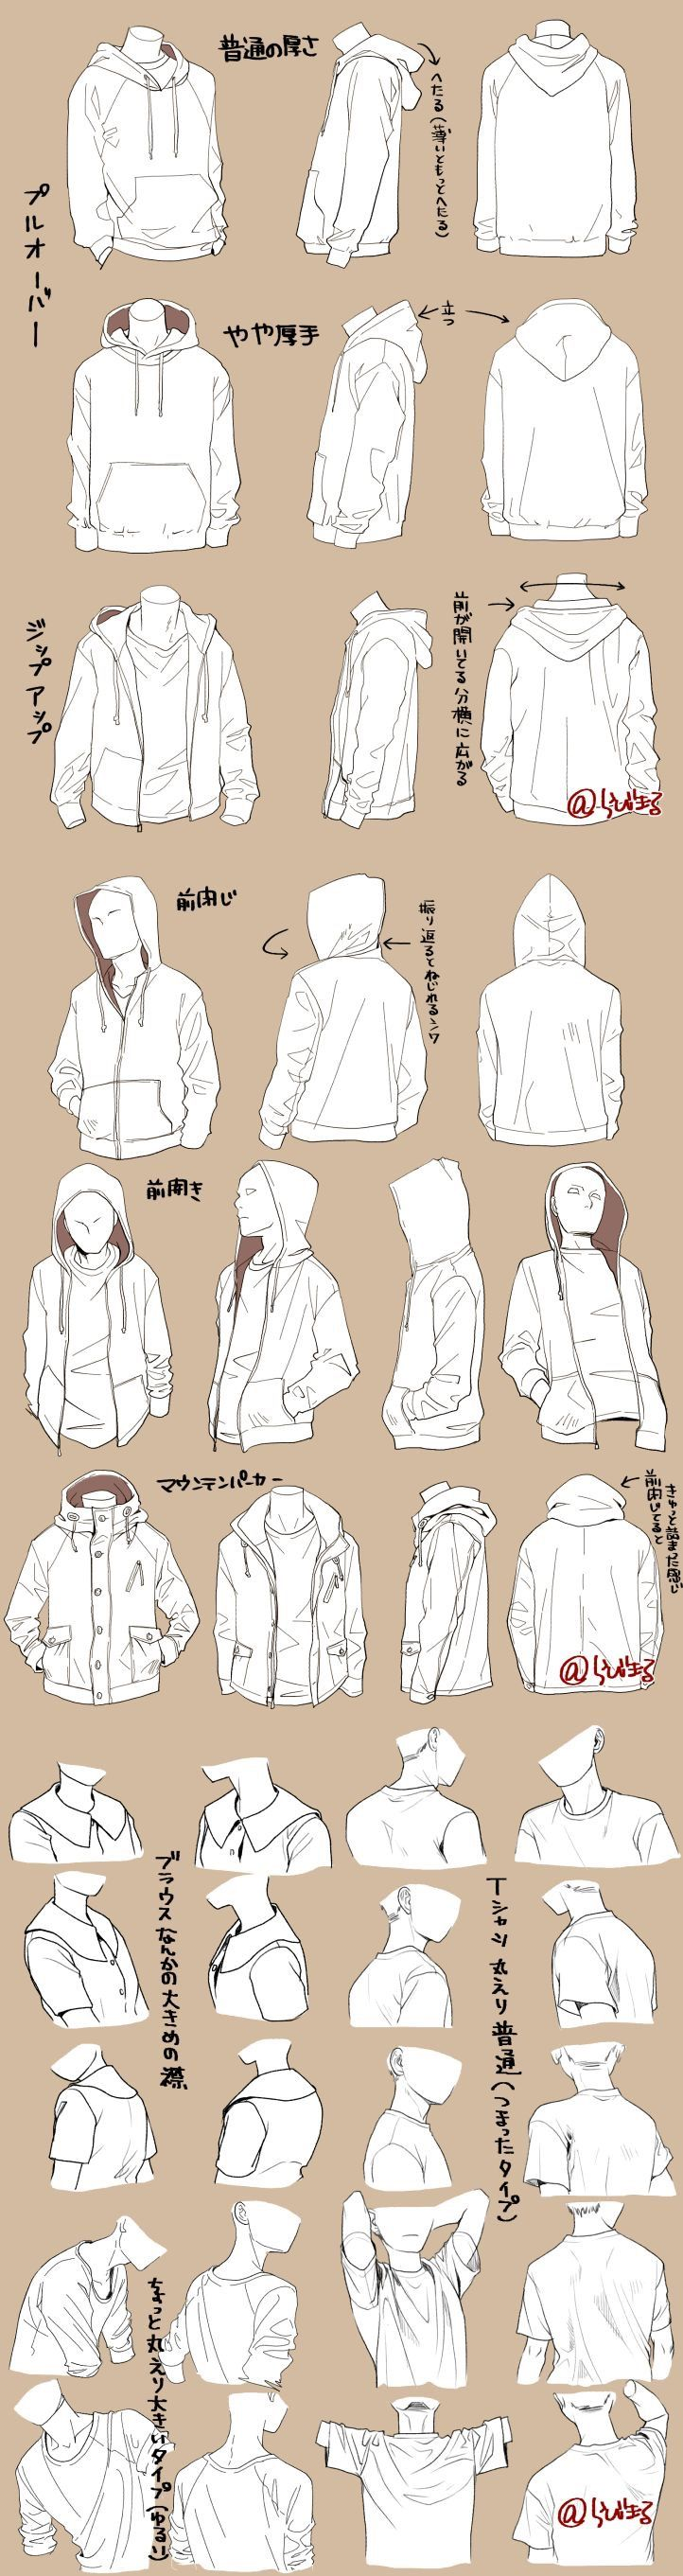 outerwear/jackets/hoodie